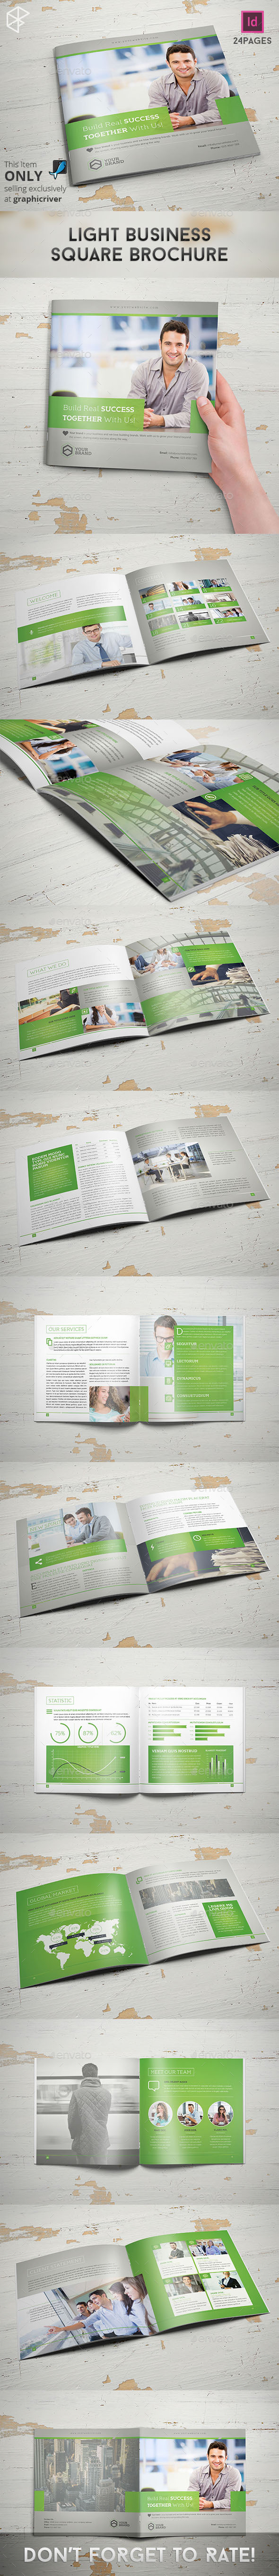 GraphicRiver Light Business Square Brochure 10943045